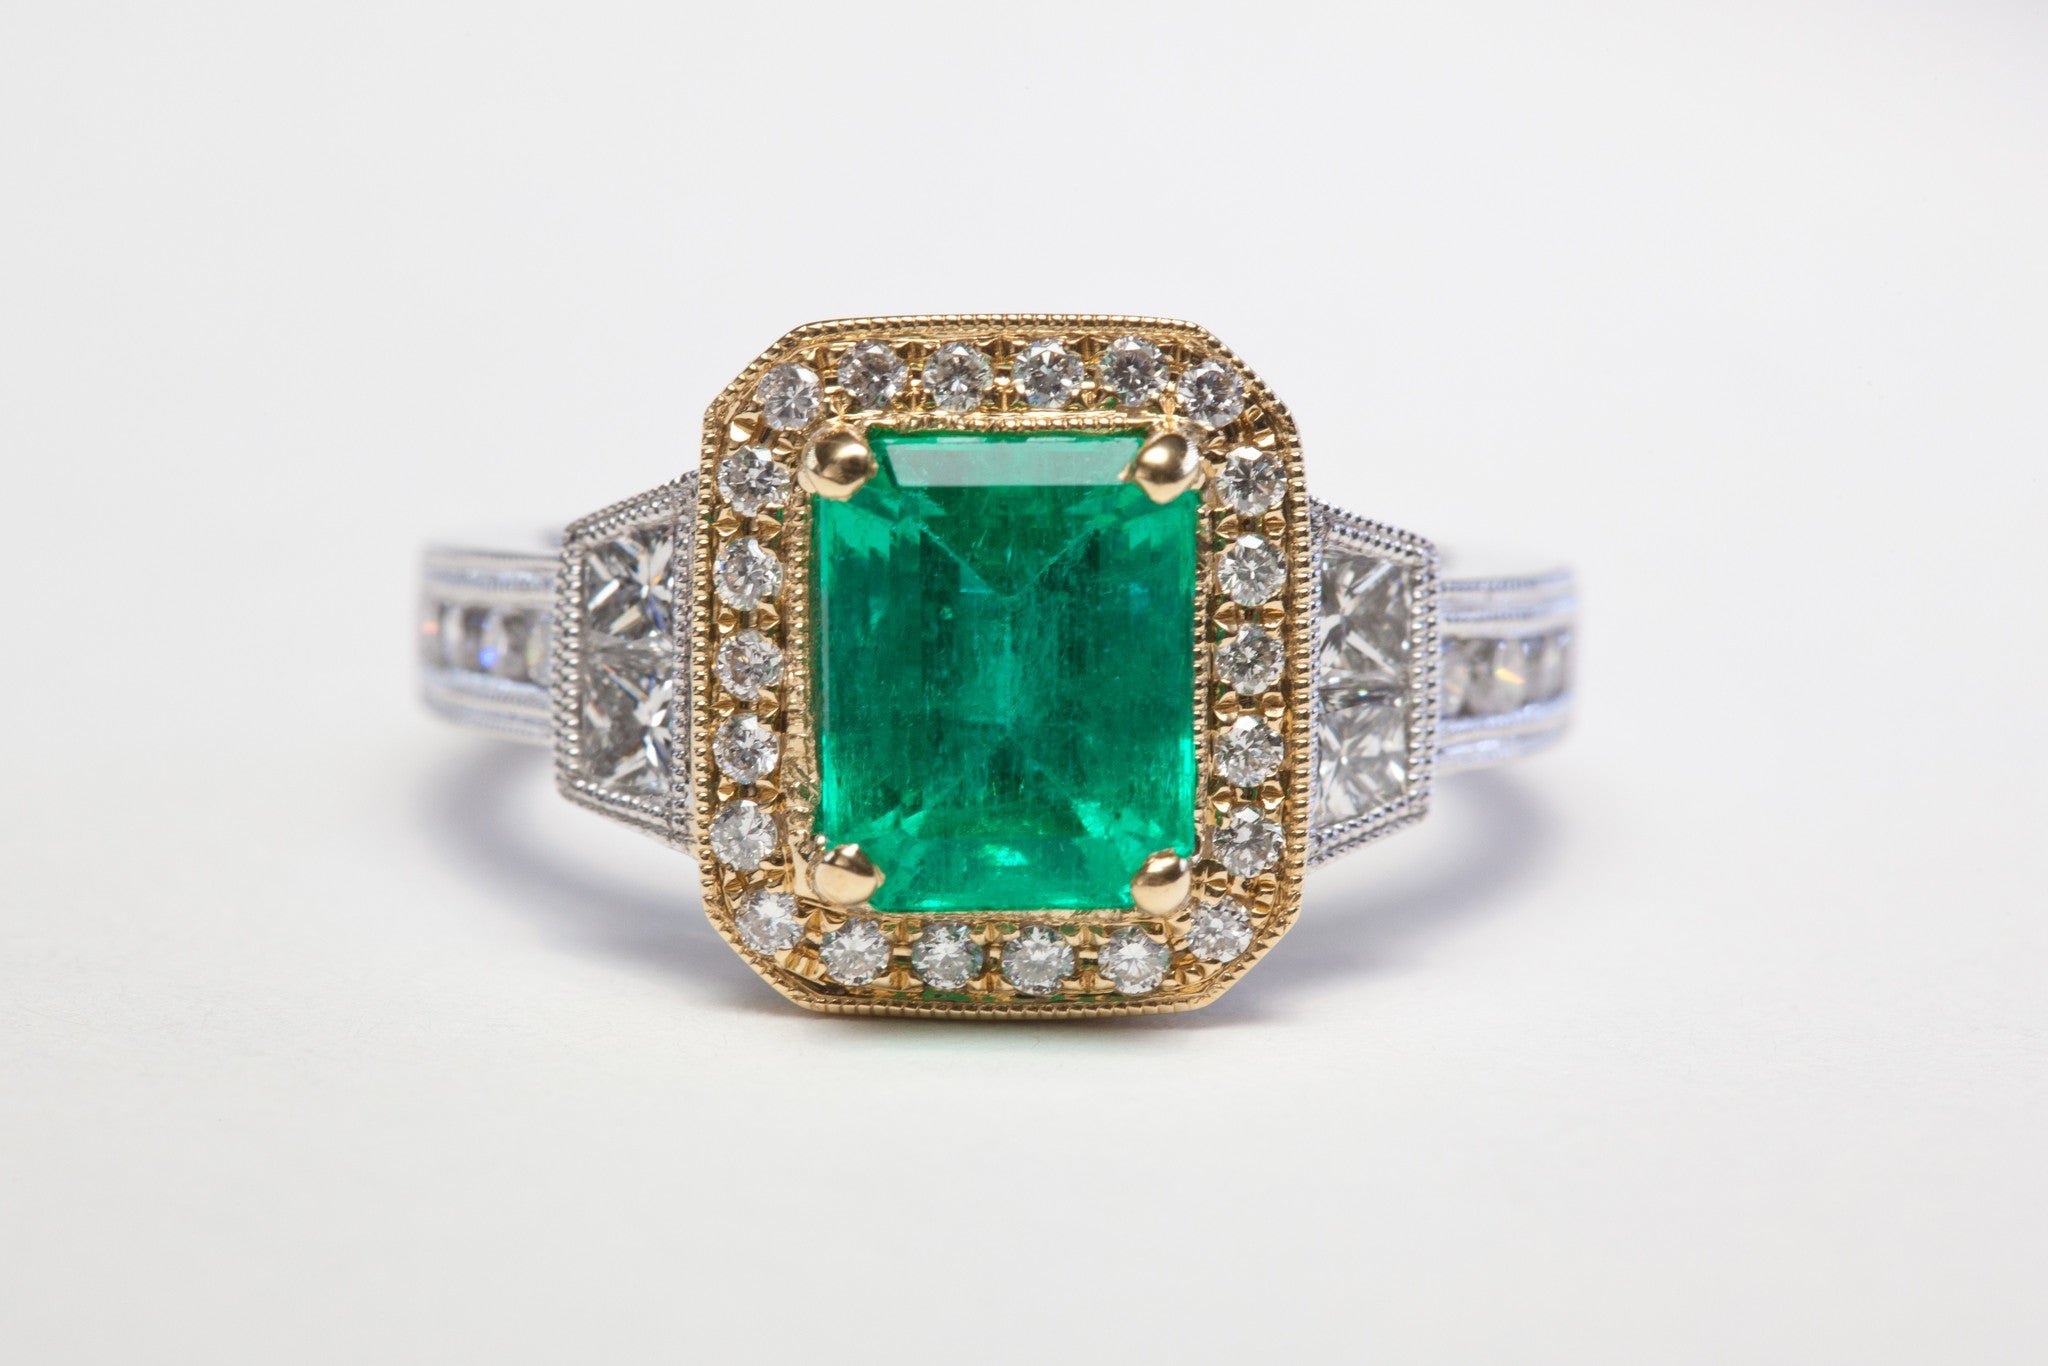 stl models green jewellery printable print model stone rings emerald ring jewelry